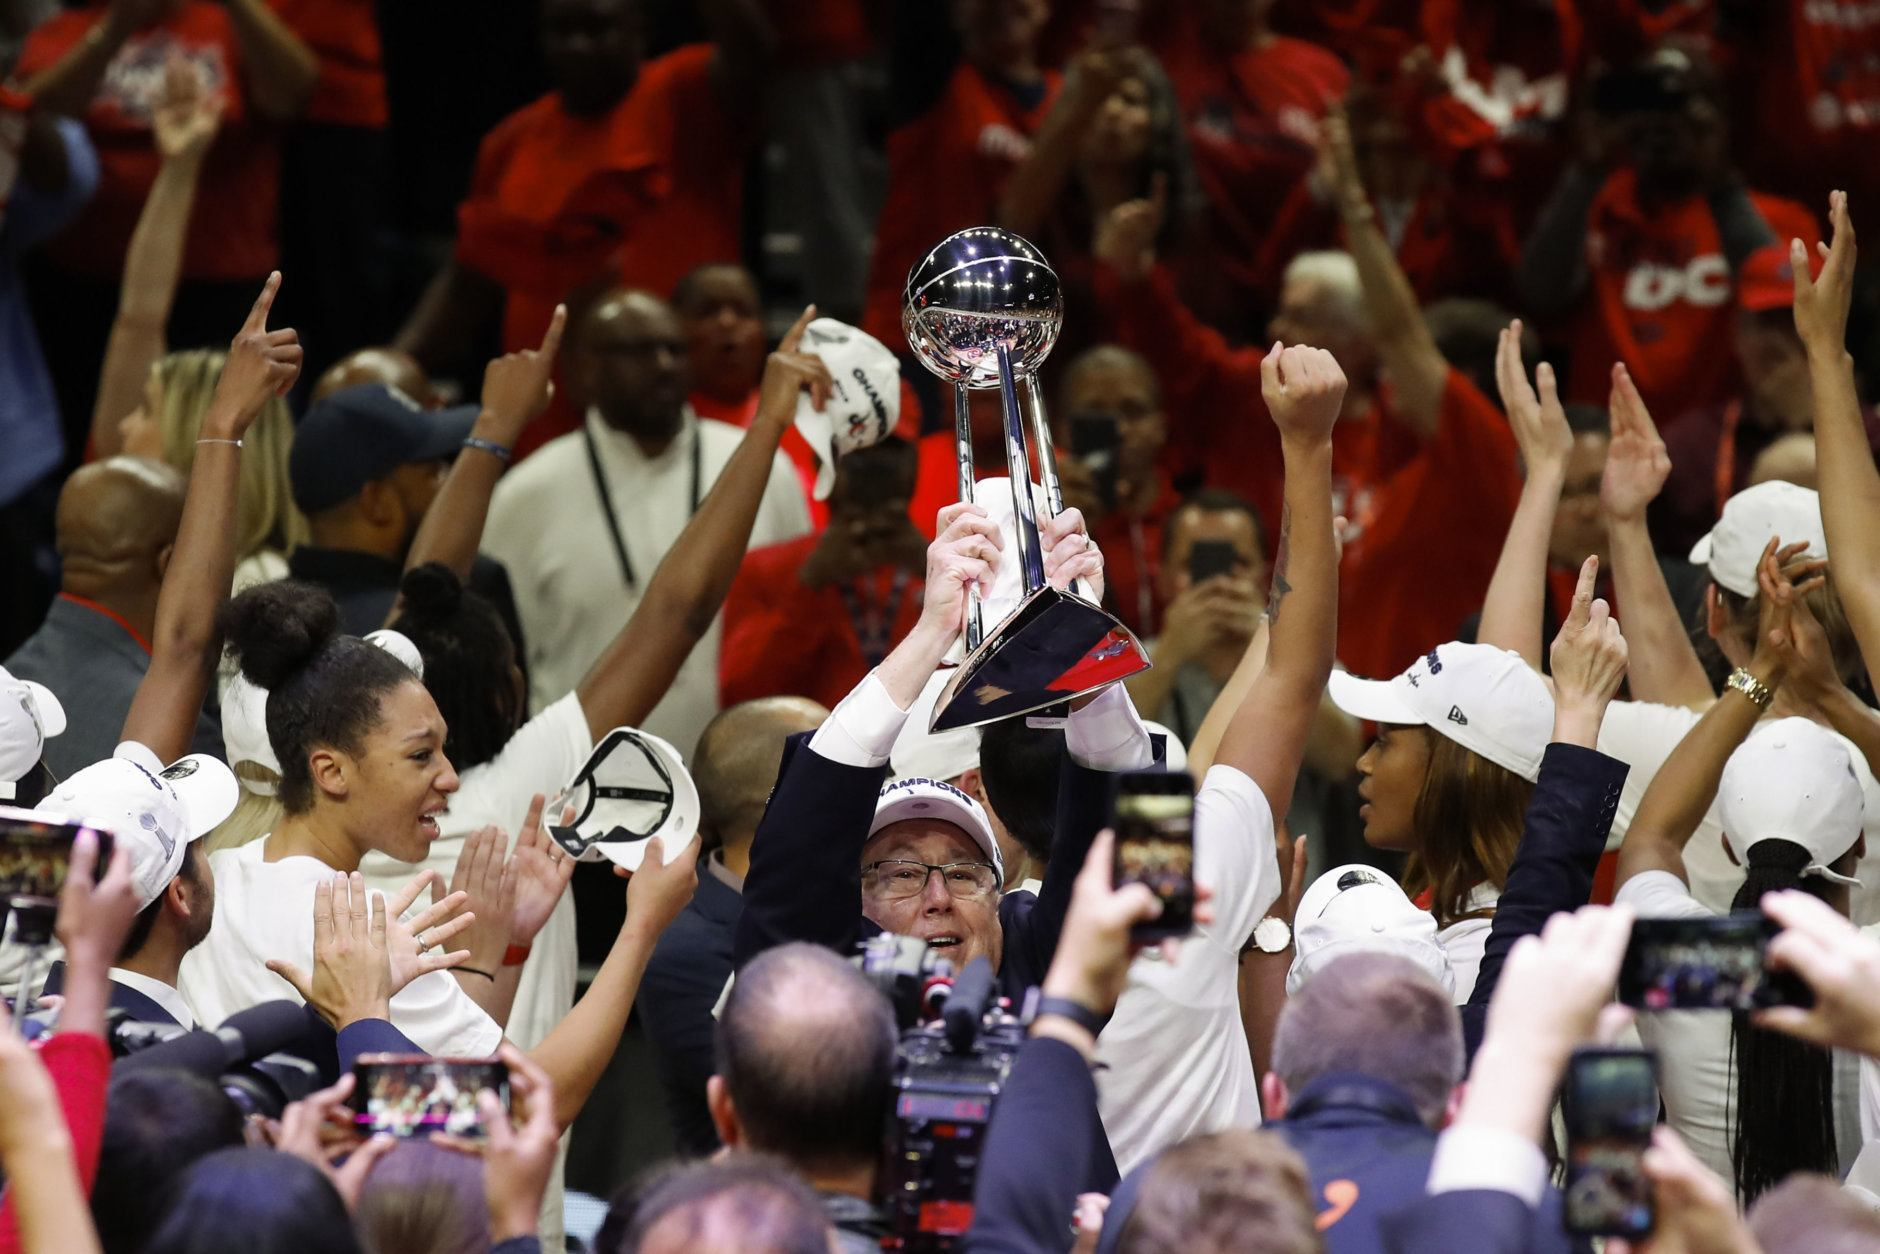 Washington Mystics head coach Mike Thibault holds up the trophy after Game 5 of basketball's WNBA Finals against the Connecticut Sun, Thursday, Oct. 10, 2019, in Washington. The Mystics won 89-78. (AP Photo/Alex Brandon)